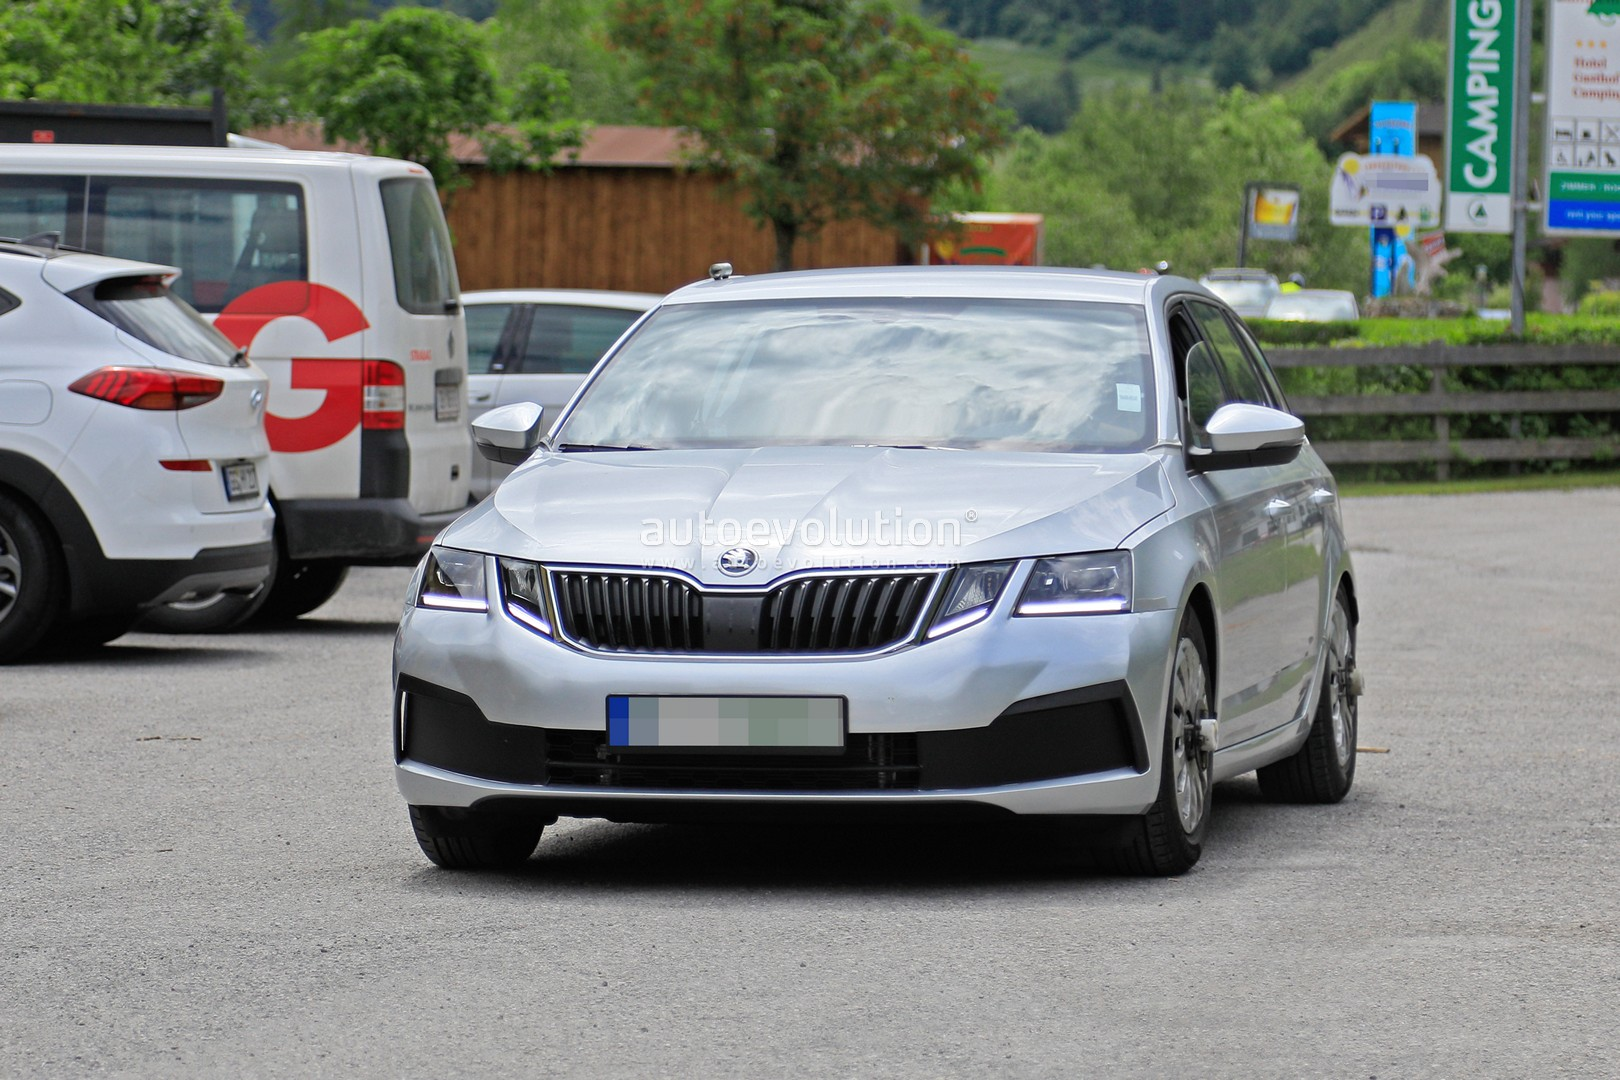 46 A 2020 The Spy Shots Skoda Superb Concept